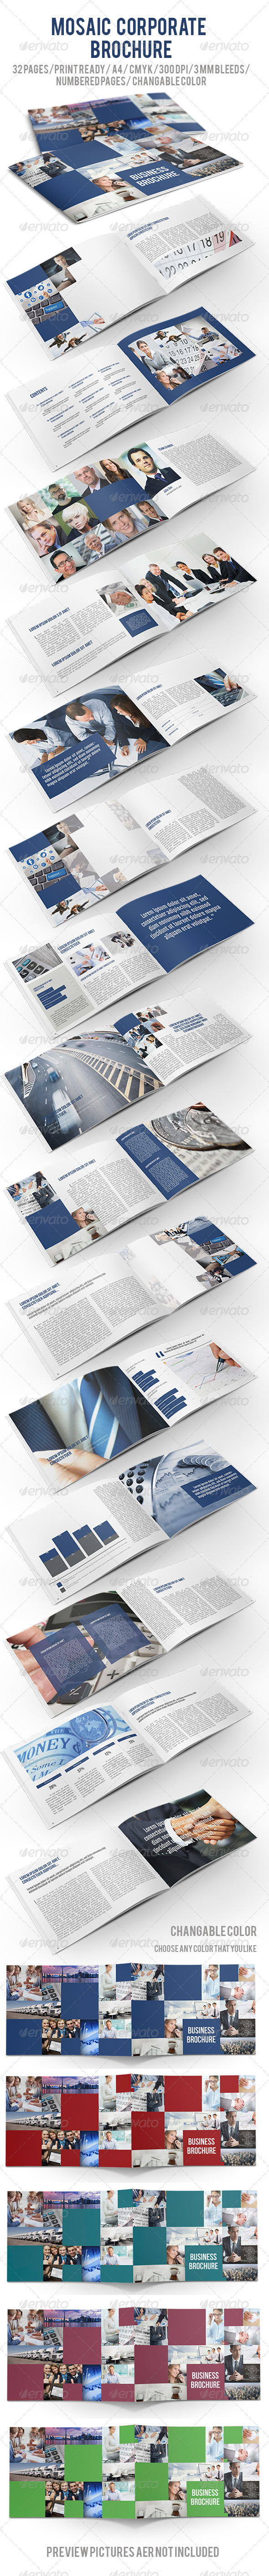 Mosaic Corporate Brochure